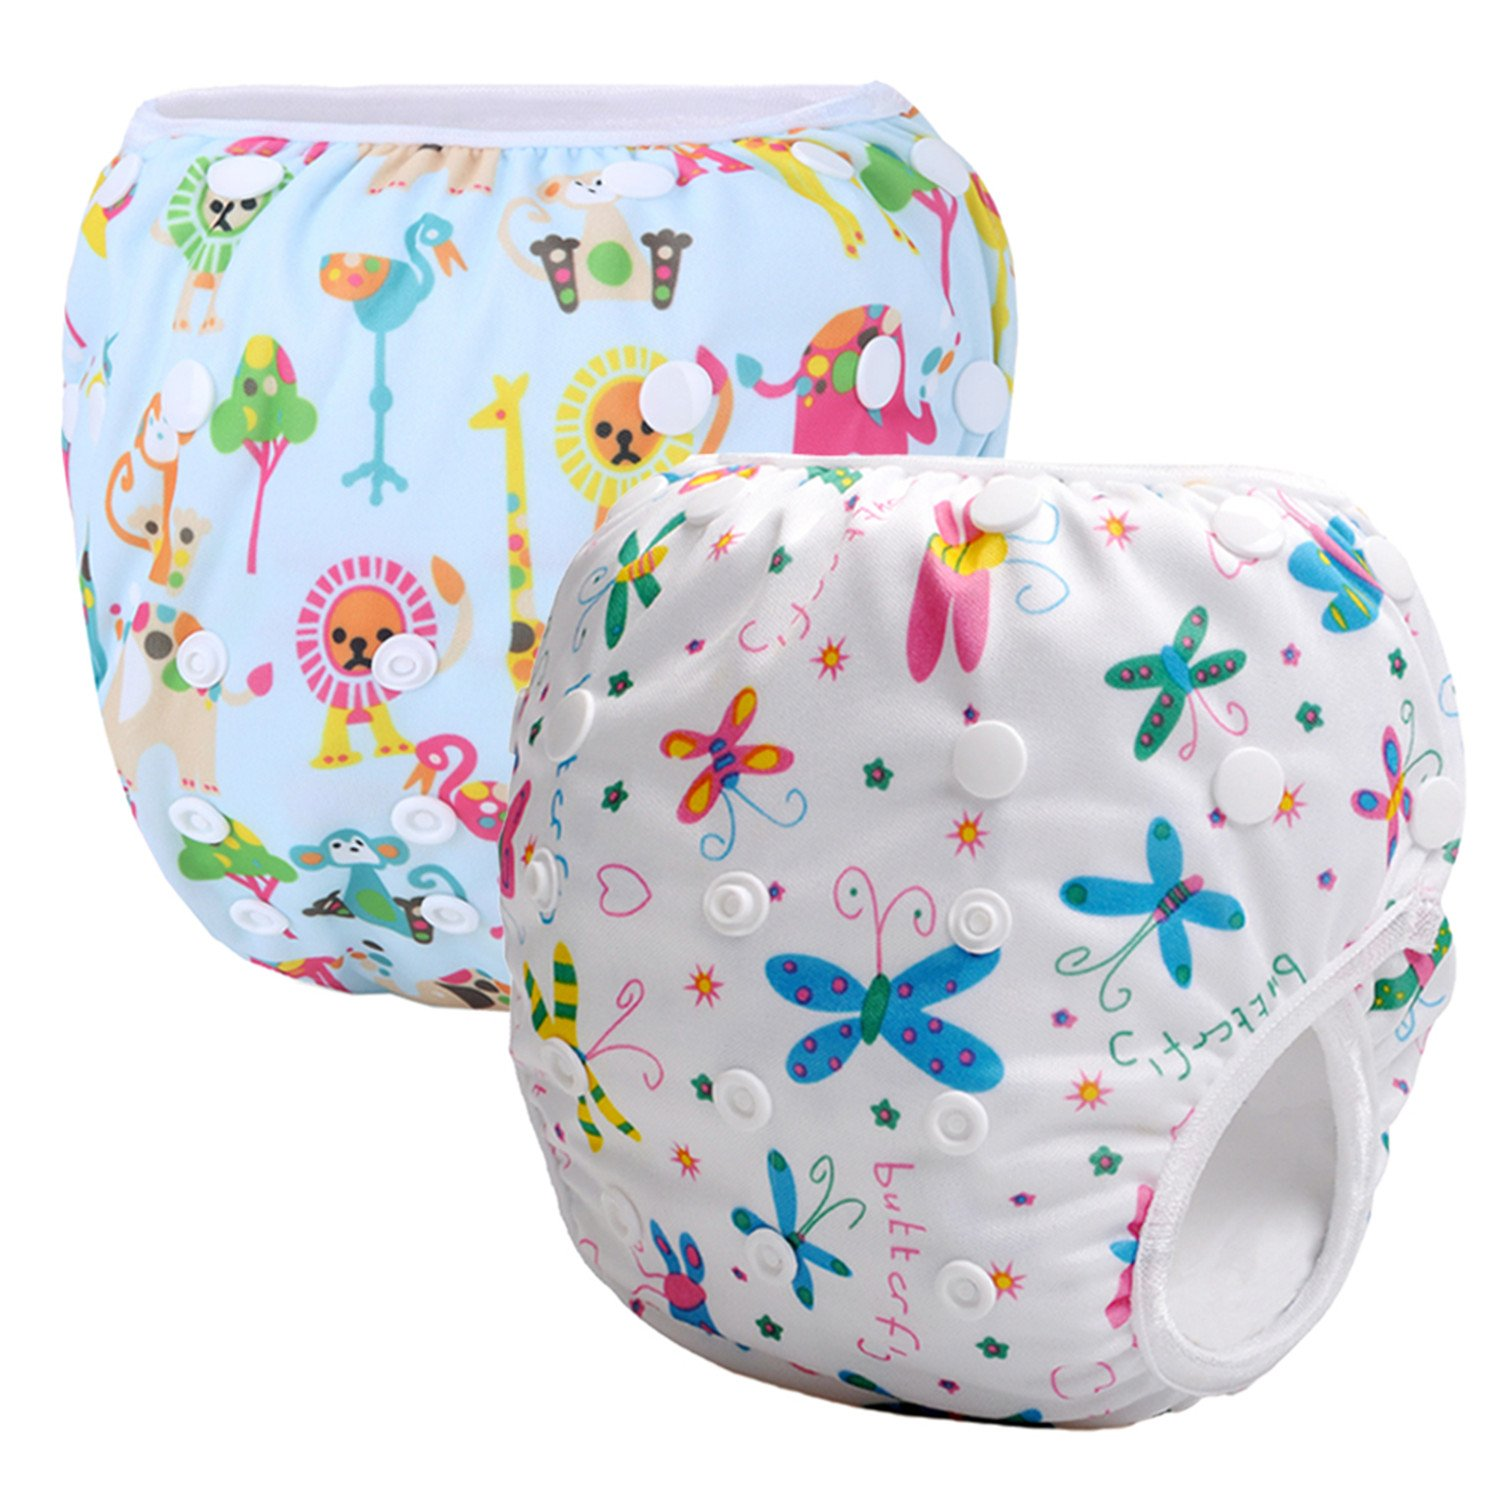 storeofbaby Swim Nappy Reusable Baby Diapers Waterproof Cover for Girls and Boys